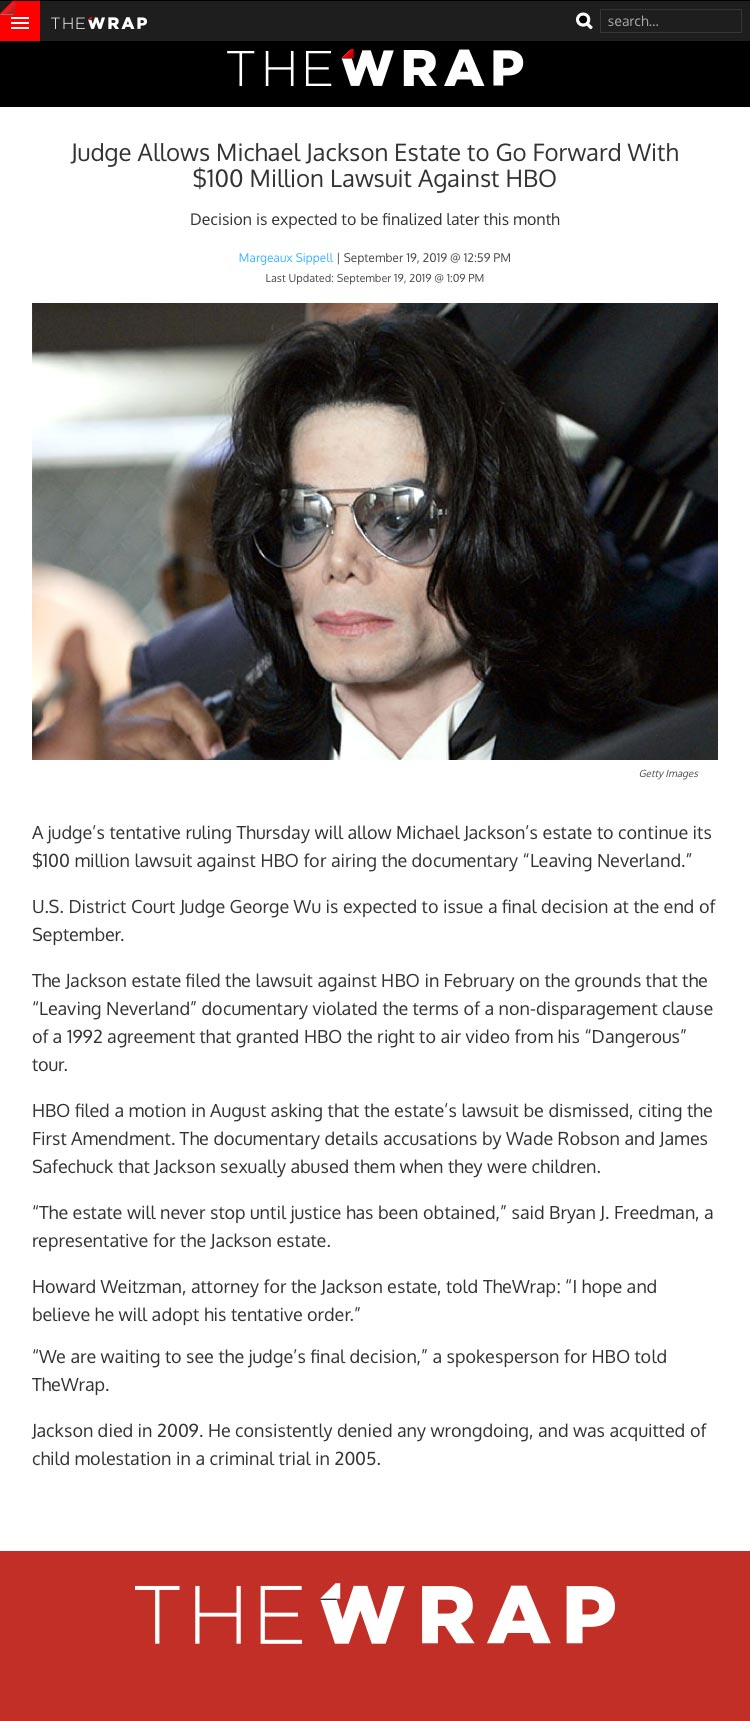 Judge Allows Michael Jackson Estate to Go Forward With $100 Million Lawsuit Against HBO - article by TheWrap.com